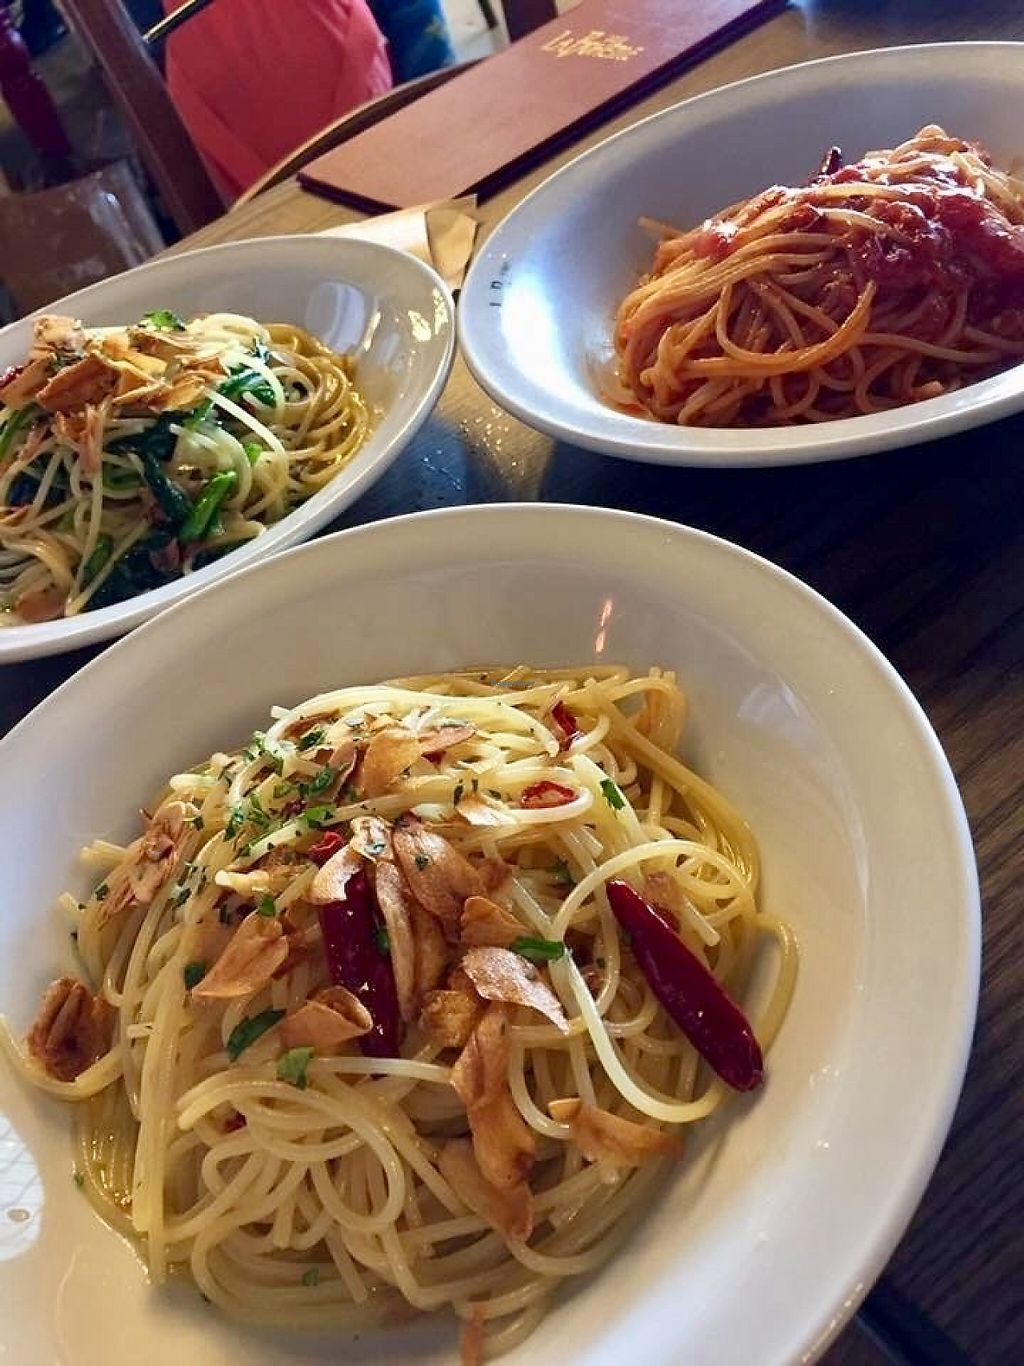 "Photo of Cafe La Boheme - Jiyugaoka  by <a href=""/members/profile/paulkates"">paulkates</a> <br/>Vegan pasta <br/> June 7, 2017  - <a href='/contact/abuse/image/93492/266526'>Report</a>"